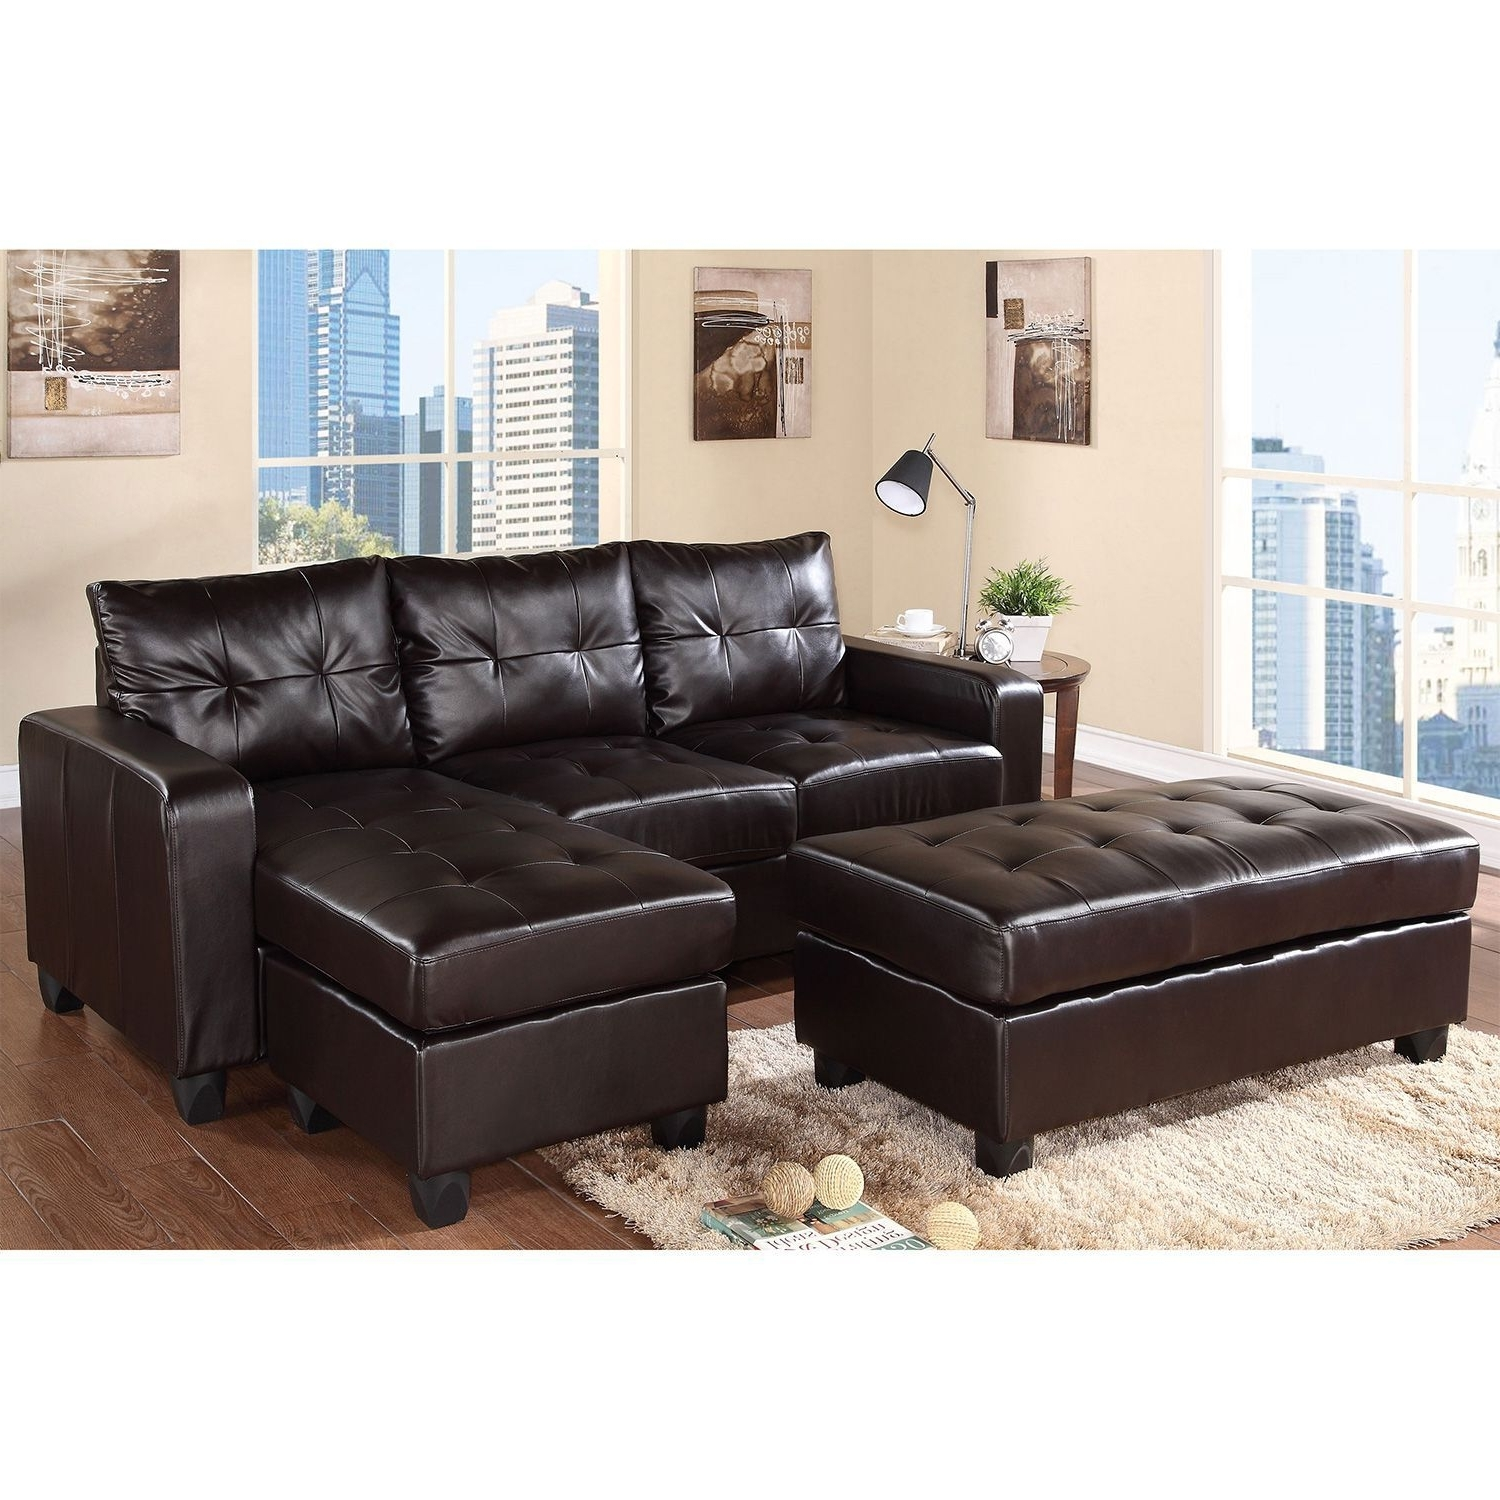 Leather Sofas For Favorite Aspen Leather Sofas (View 8 of 20)